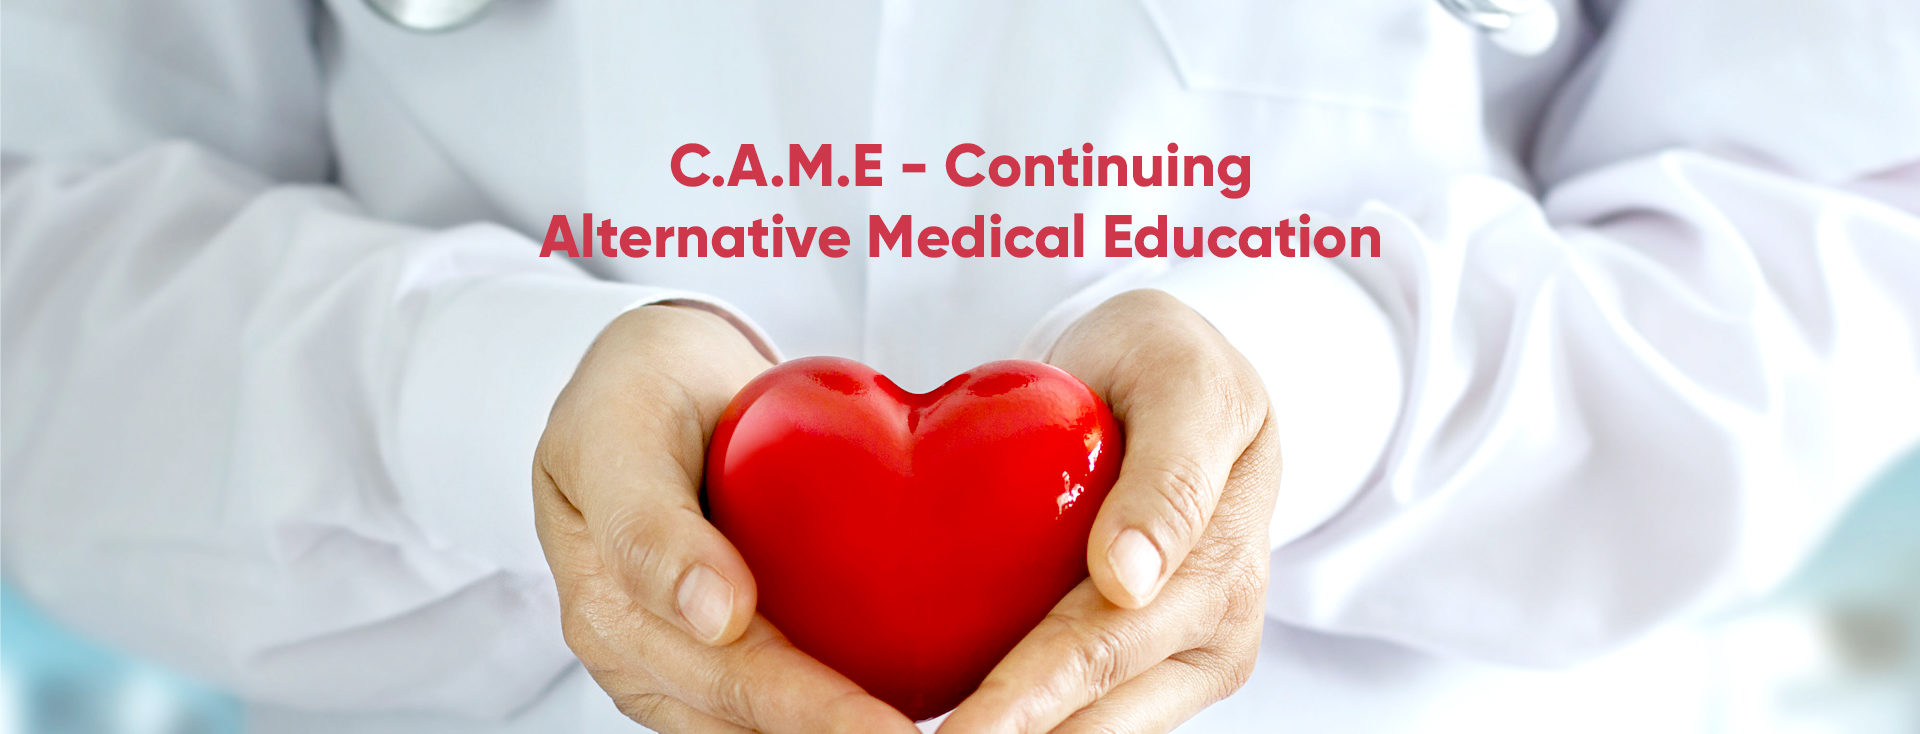 Continuing Alternative Medical Education